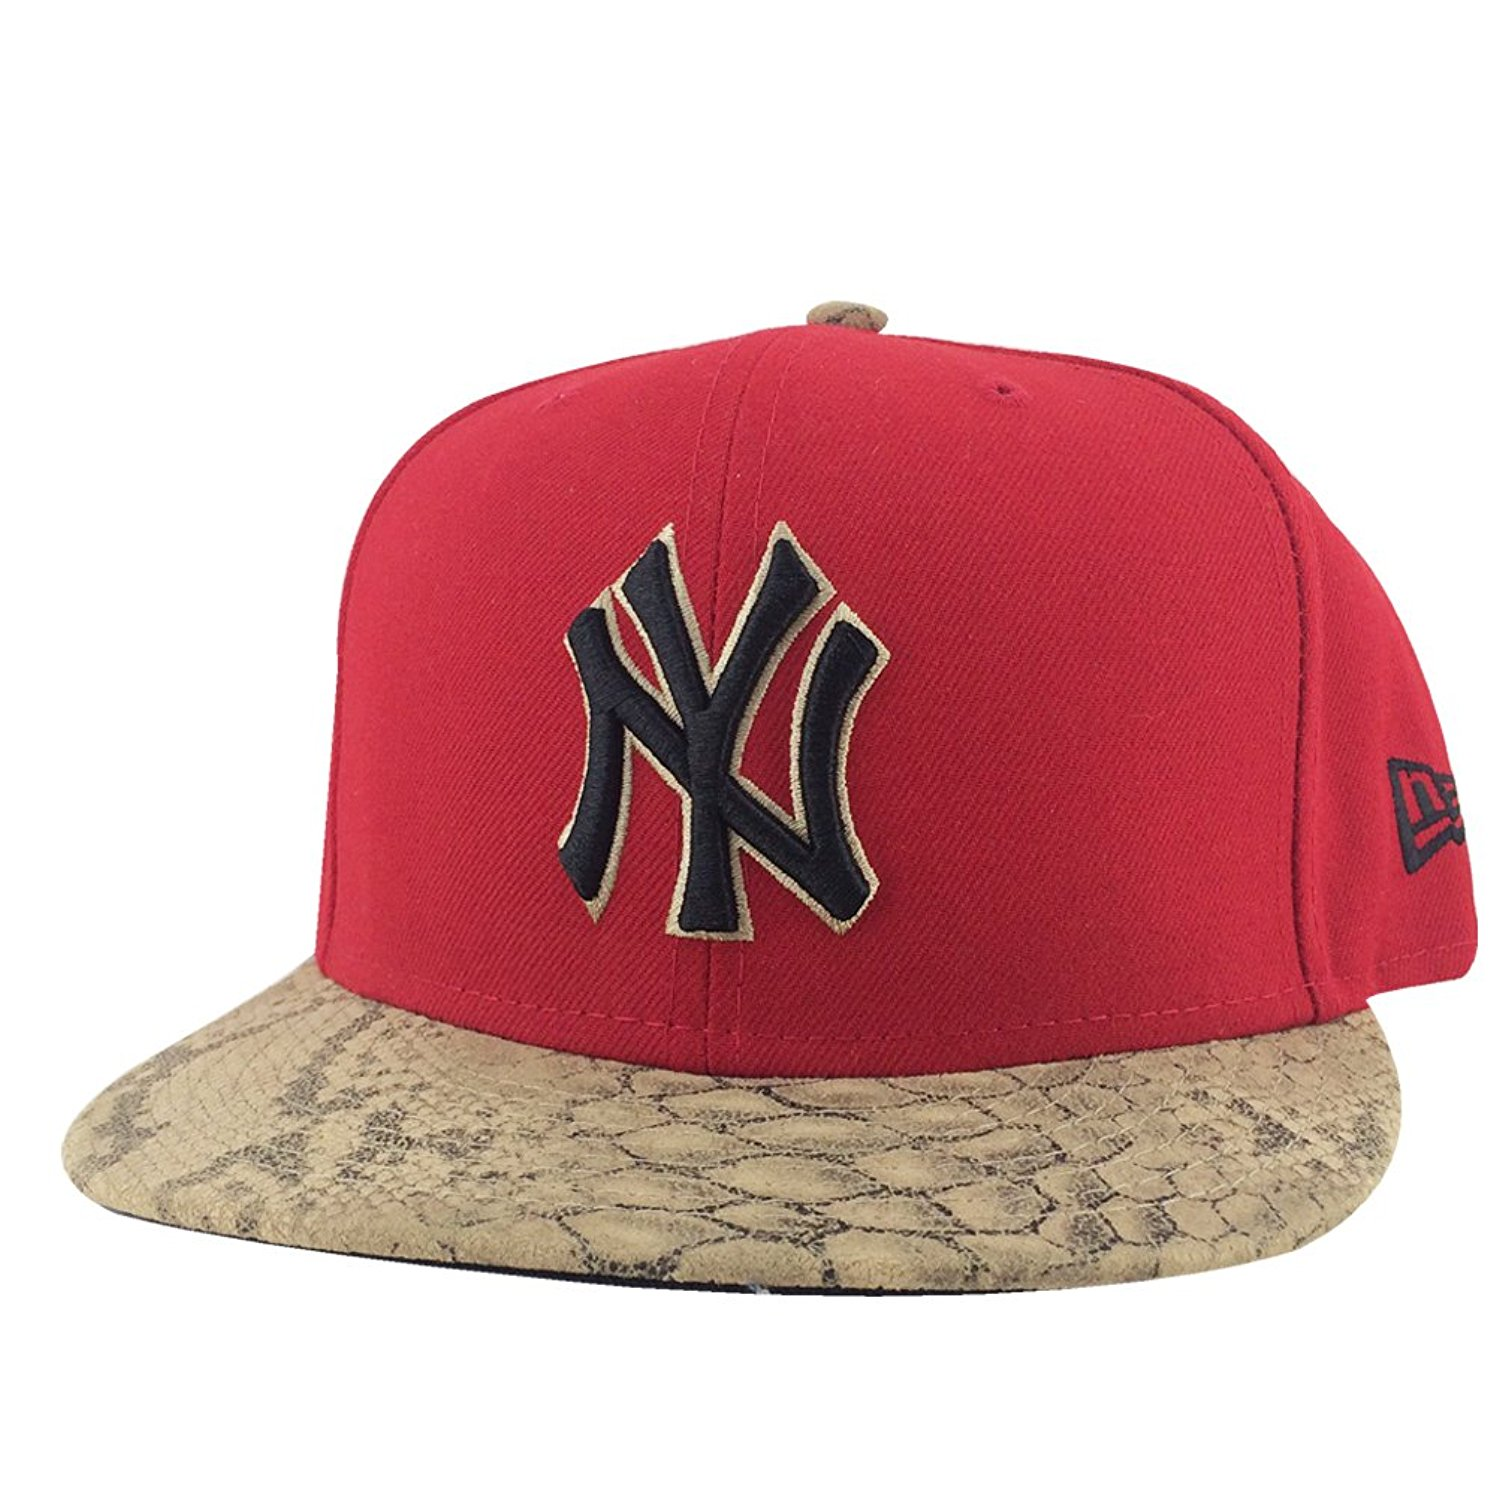 68ecae89140 Get Quotations · New Era New York Yankees Red Black Brown Snakeskin Visor  Strapback Snap Hat Cap